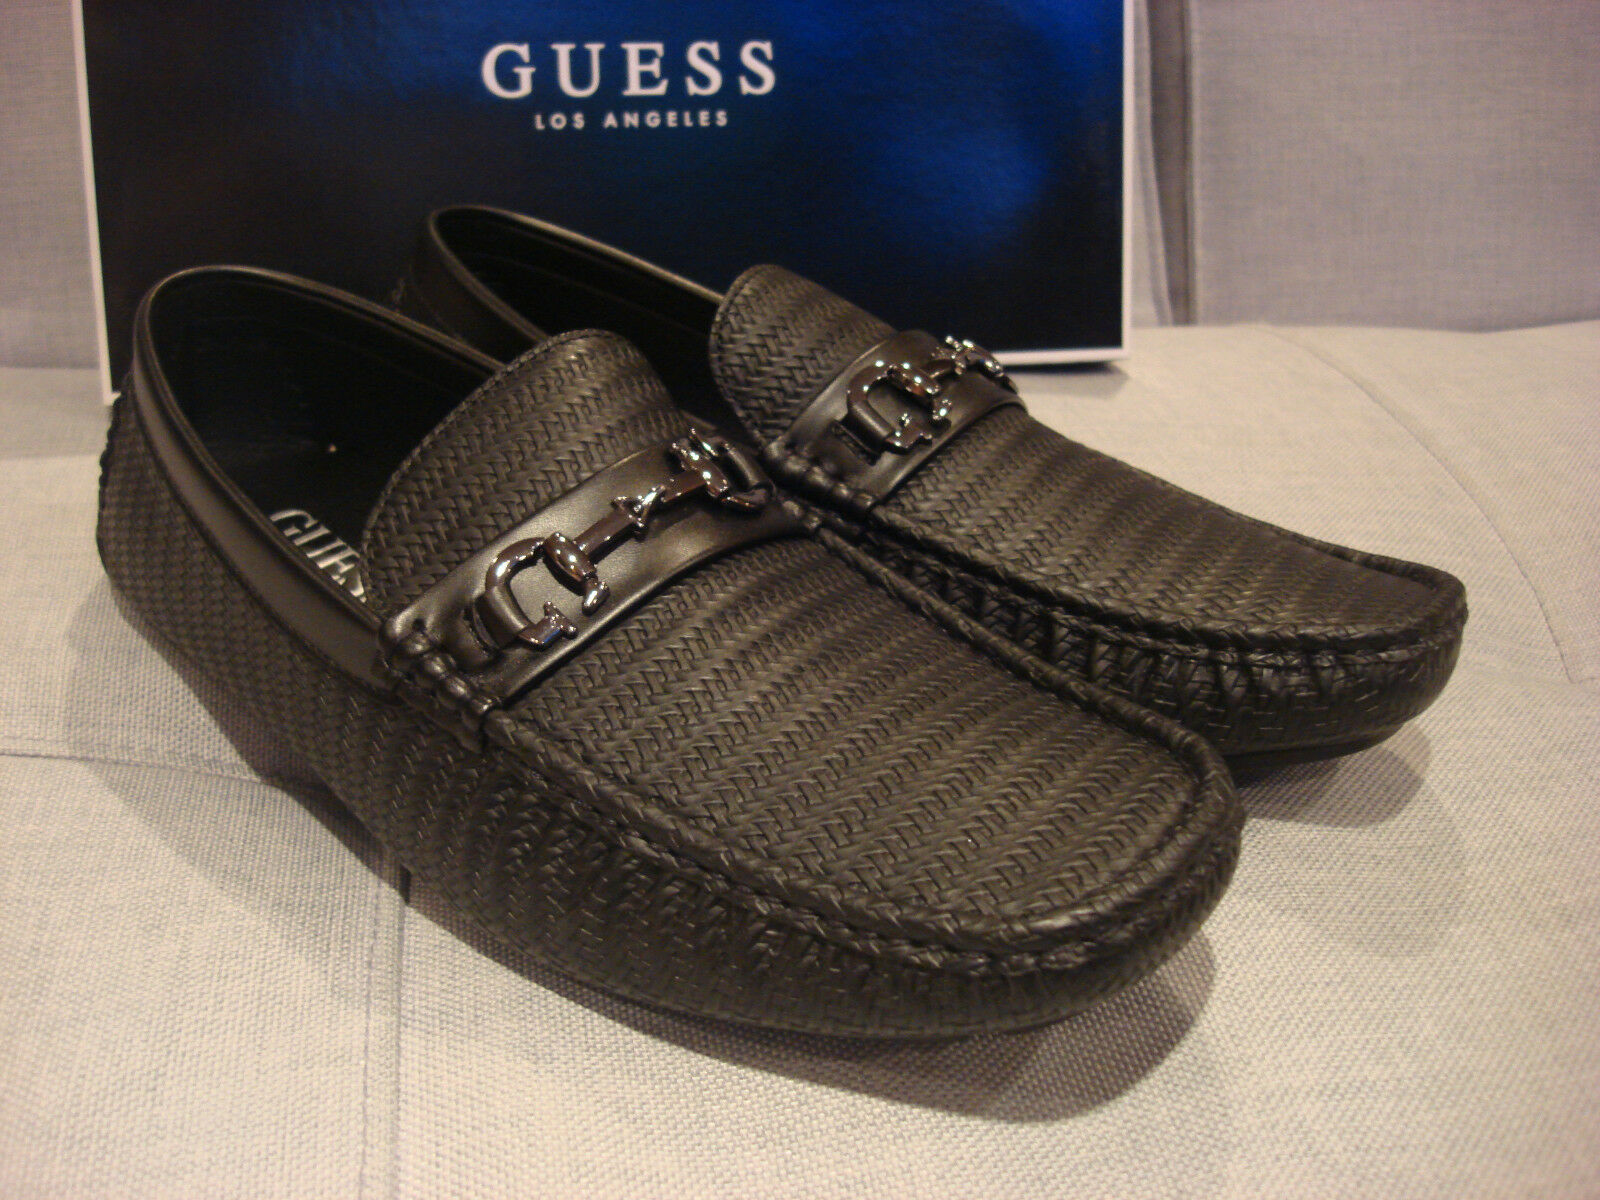 GUESS MENS ADLERS BLACK SHOES LOAFERS SIZE 10.5 - BRAND NEW